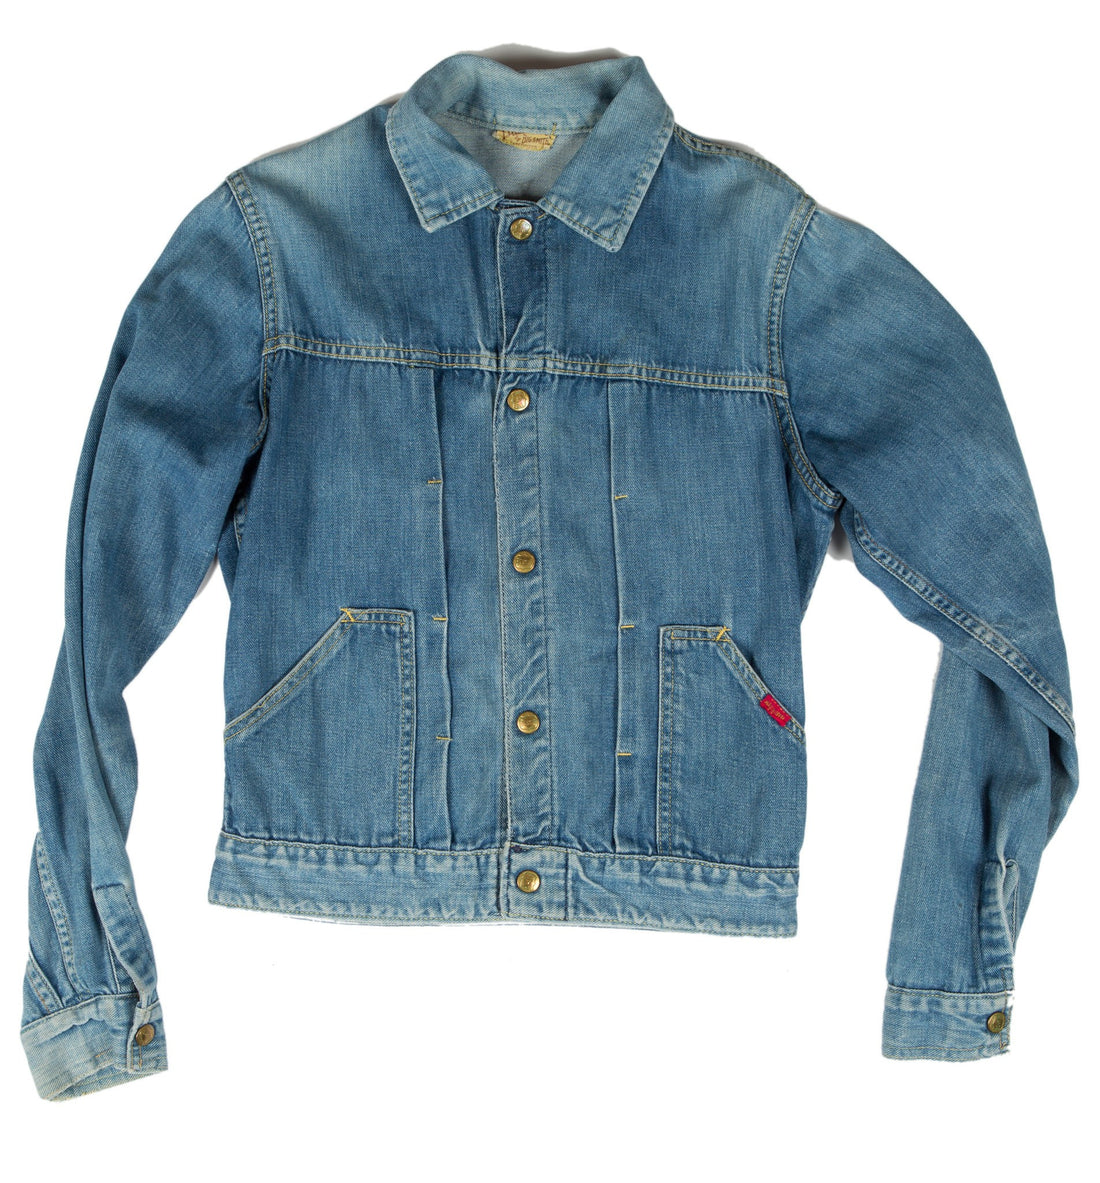 Vintage 60's Big Smith Denim Jacket - Vintage - Iron and Resin